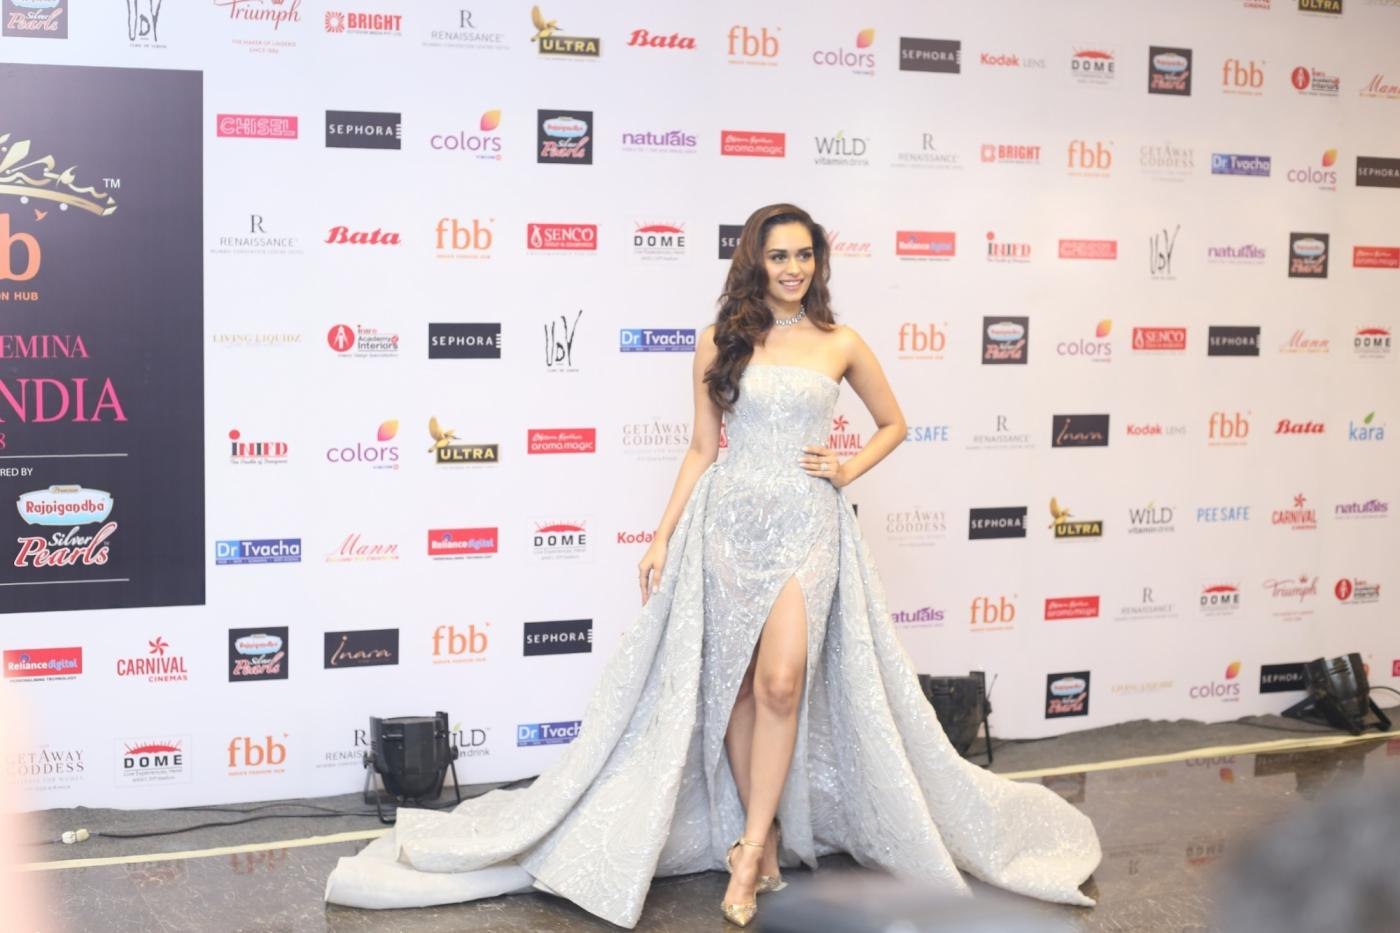 Mumbai: Miss World 2017 Manushi Chillar at the Red Carpet for the Grand finale of Miss India 2018 in Mumbai on June 19, 2018. (Photo: IANS) by .